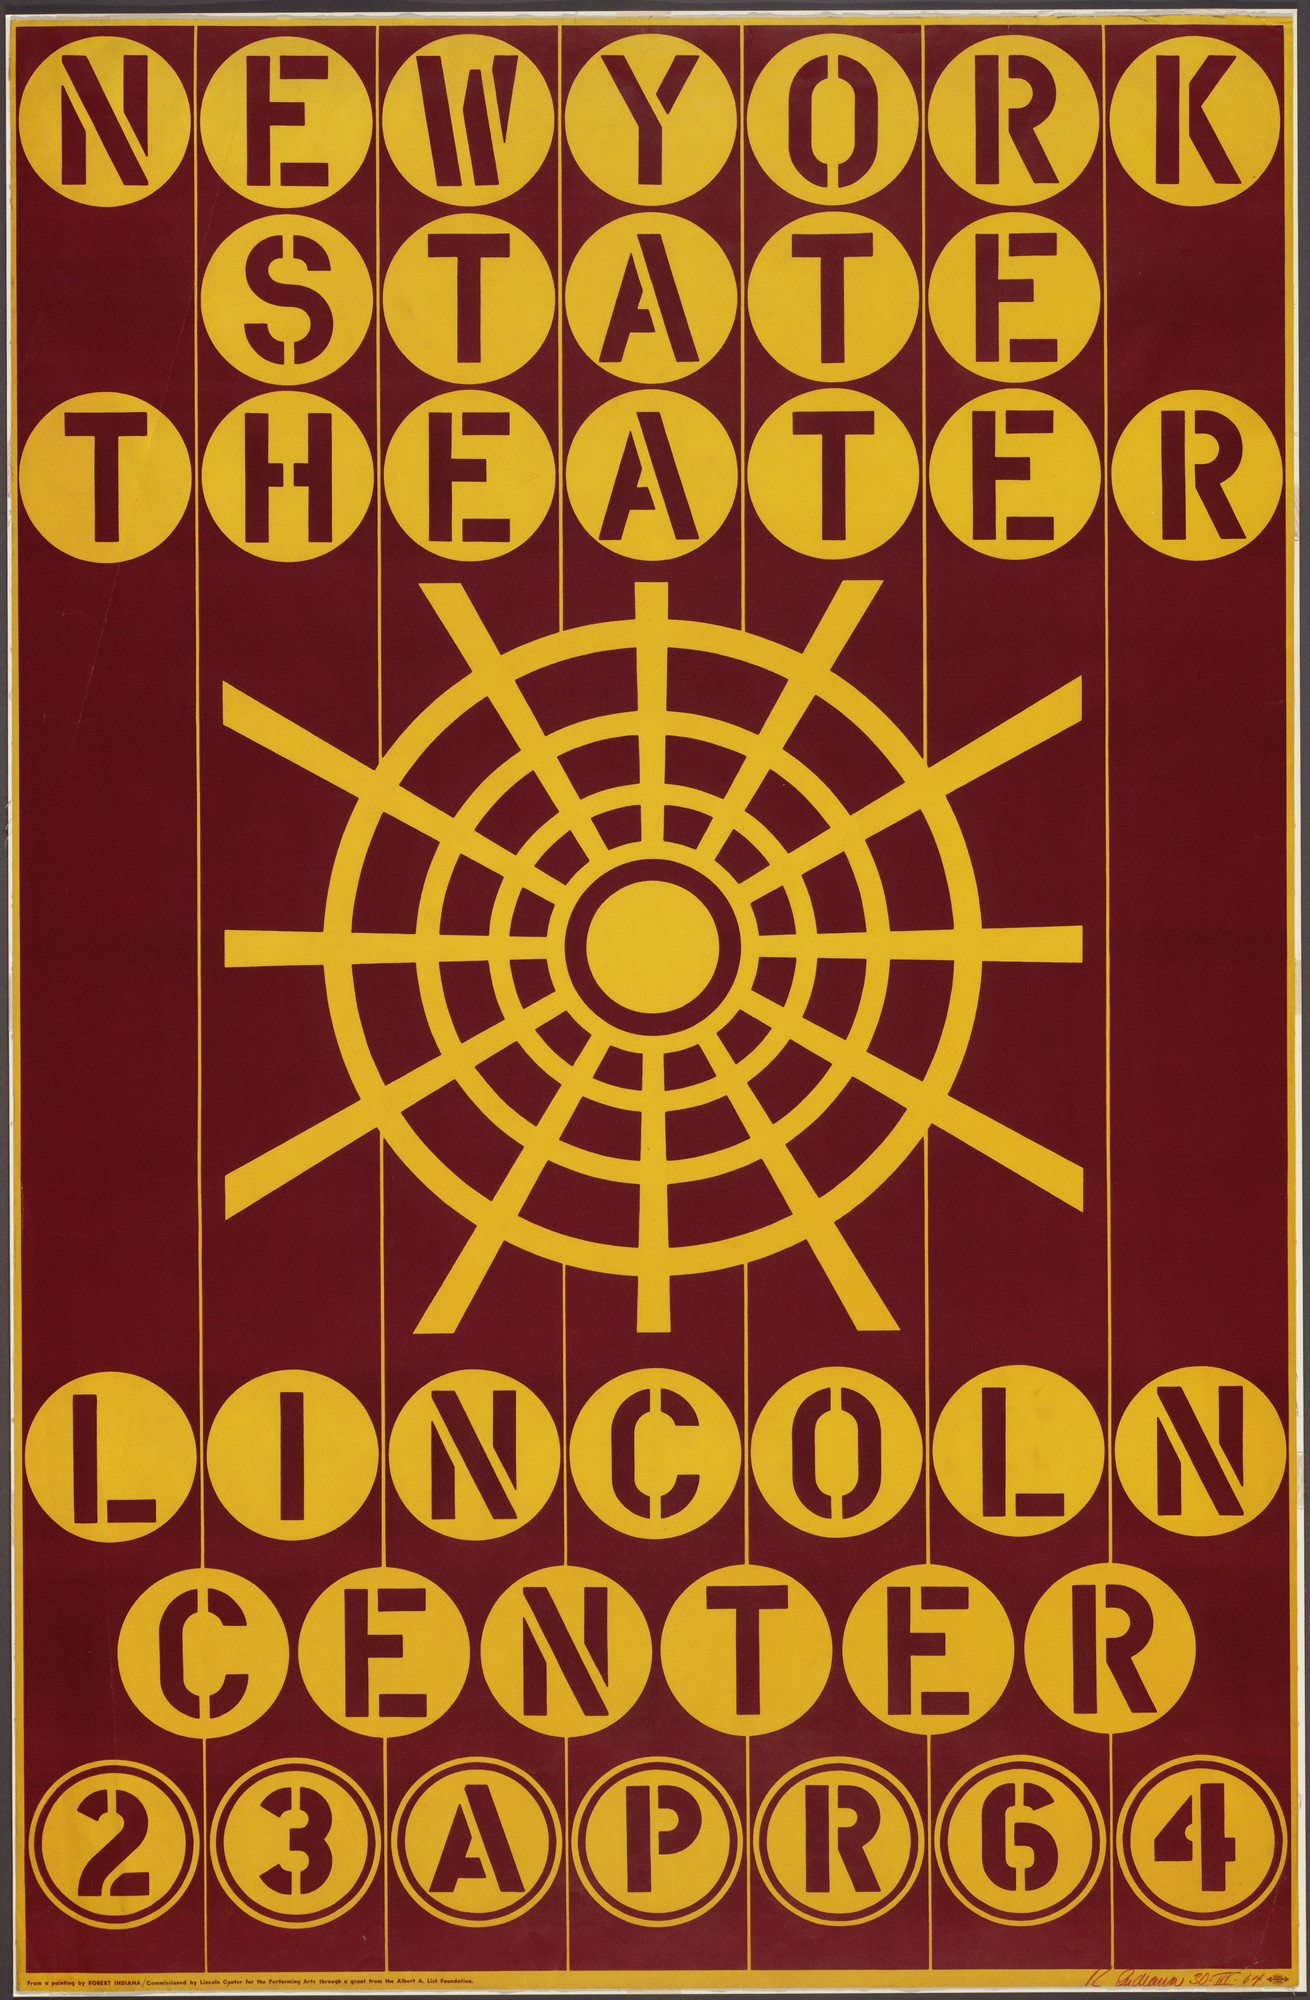 Robert Indiana. New York State Theater, Lincoln Center, 23 Apr 64. 1964